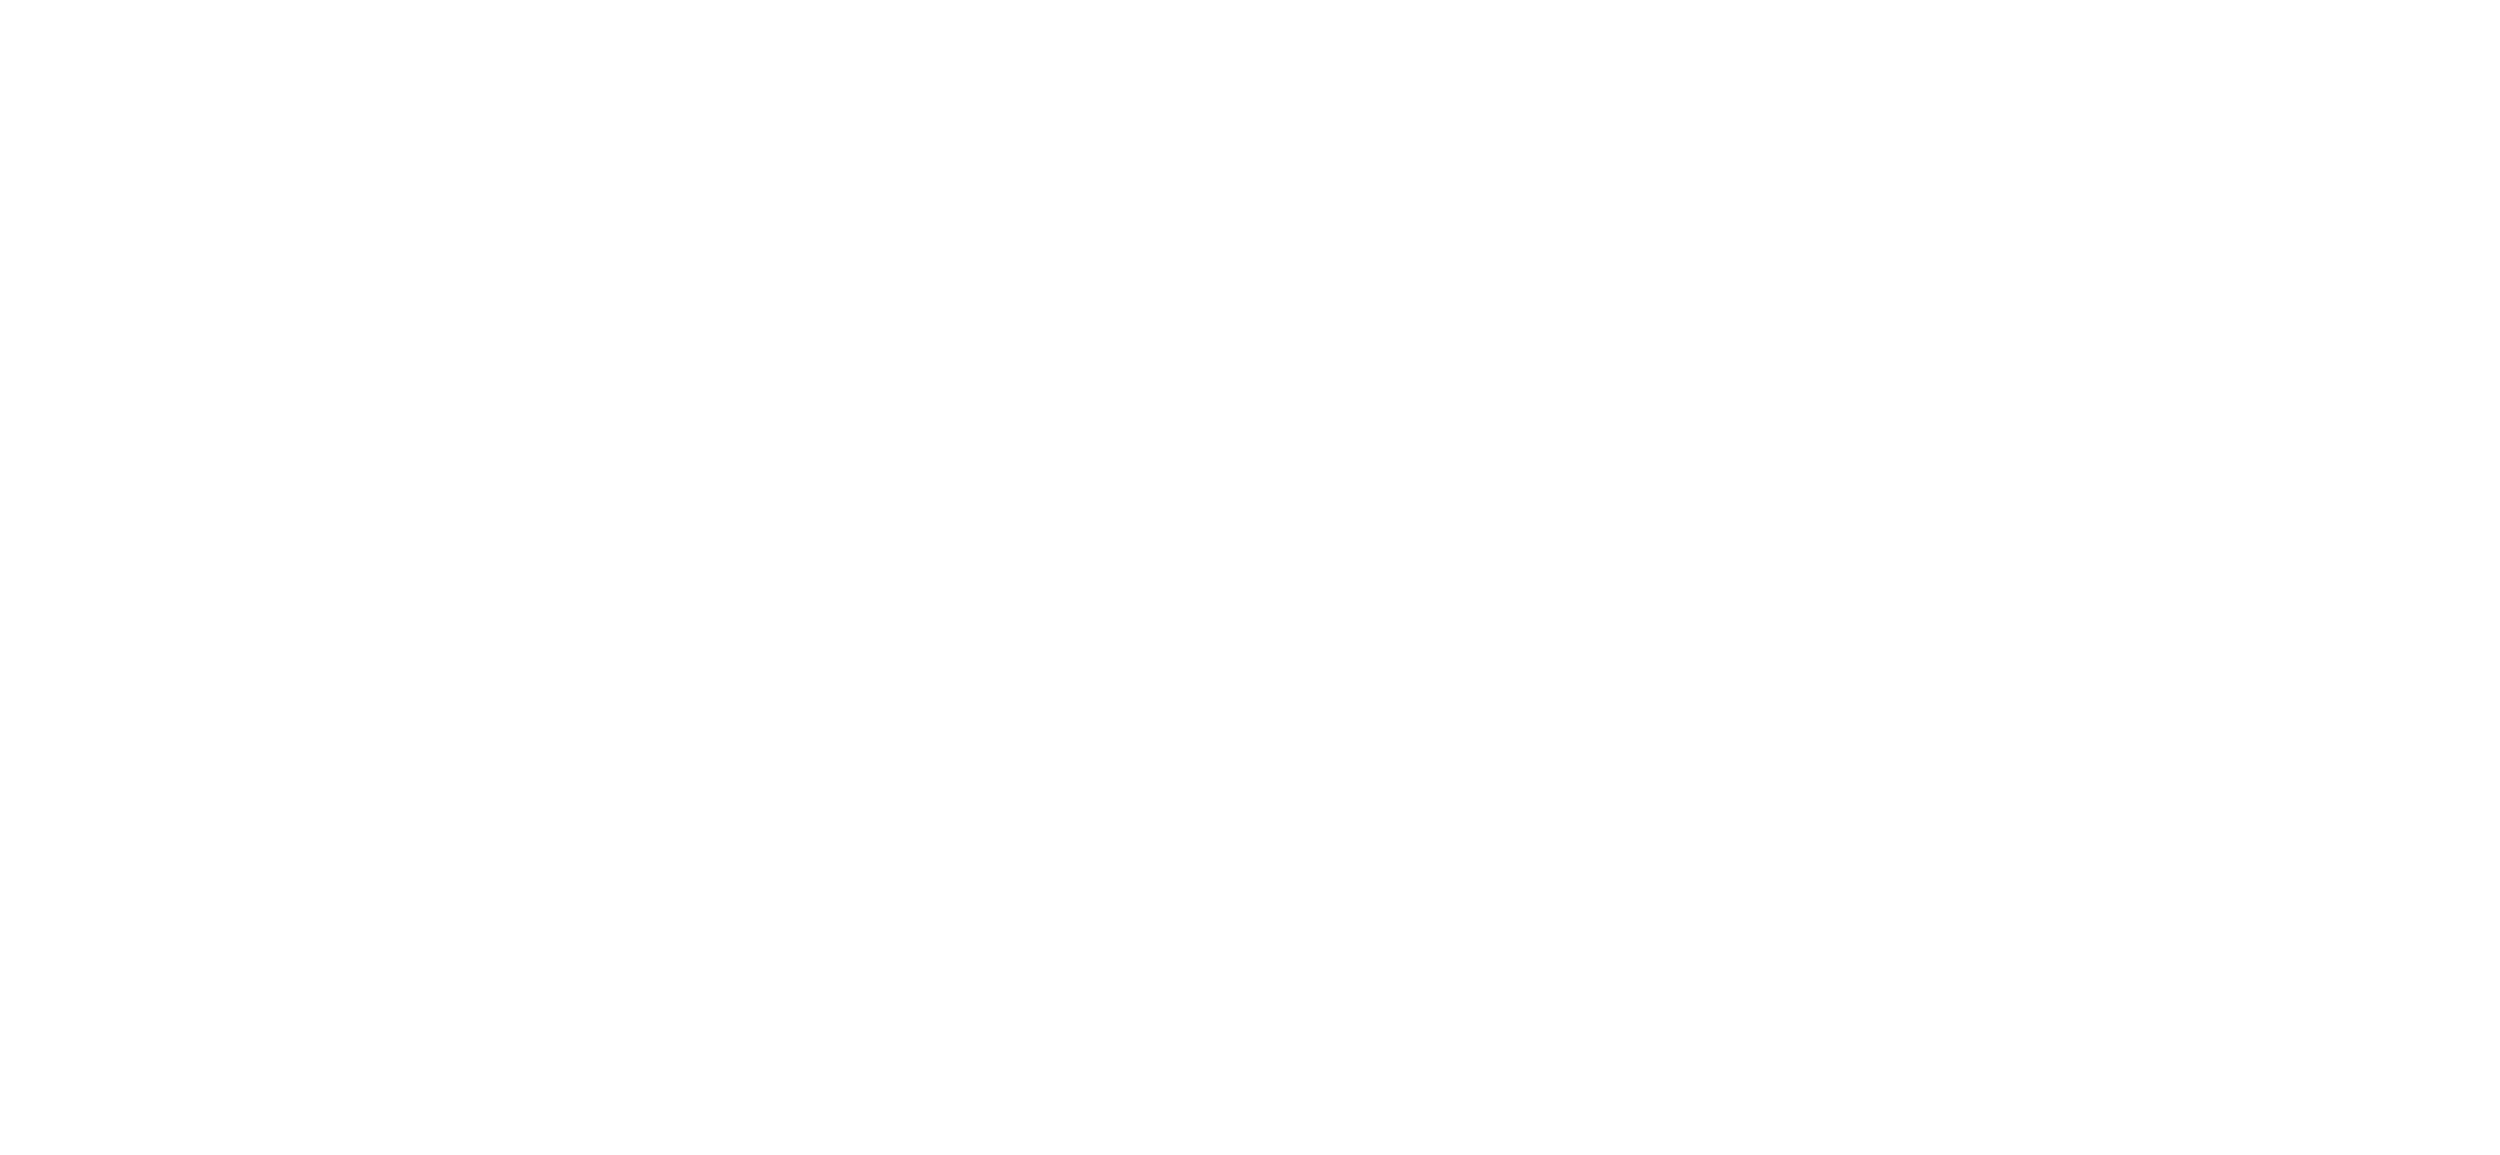 Branded Youth Text White.png